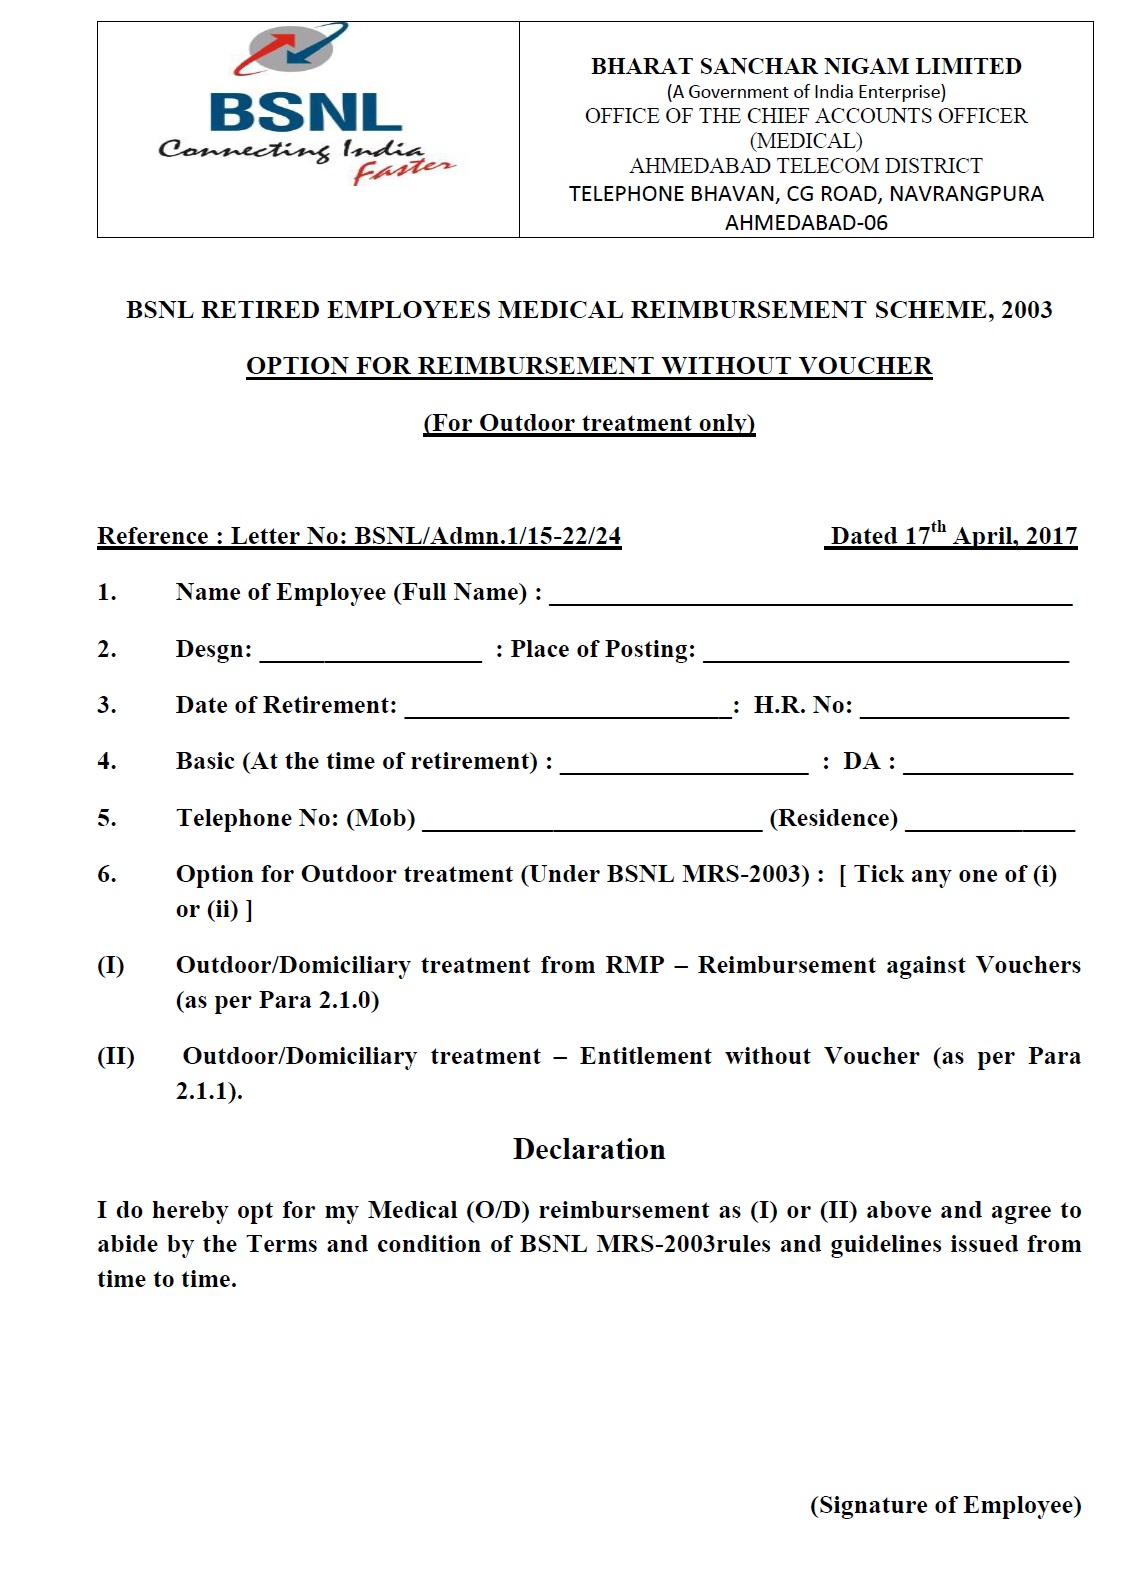 Bsnl pensioners medical reimbursement without voucher facility bsnl option form for reimbursement without voucher spiritdancerdesigns